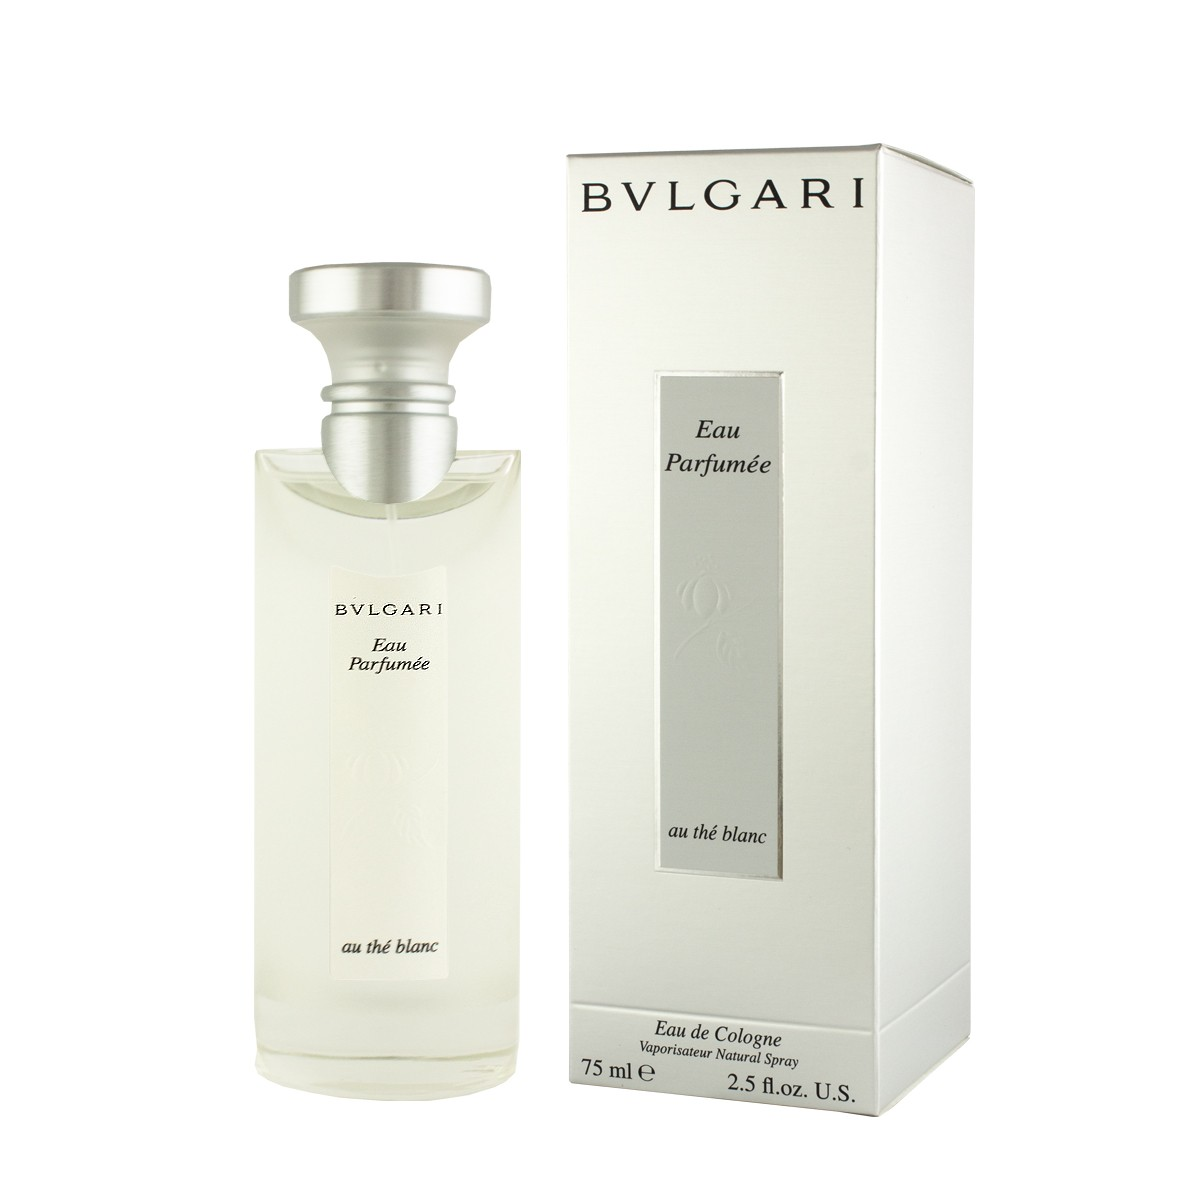 Bvlgari Au The Blanc - White Tea